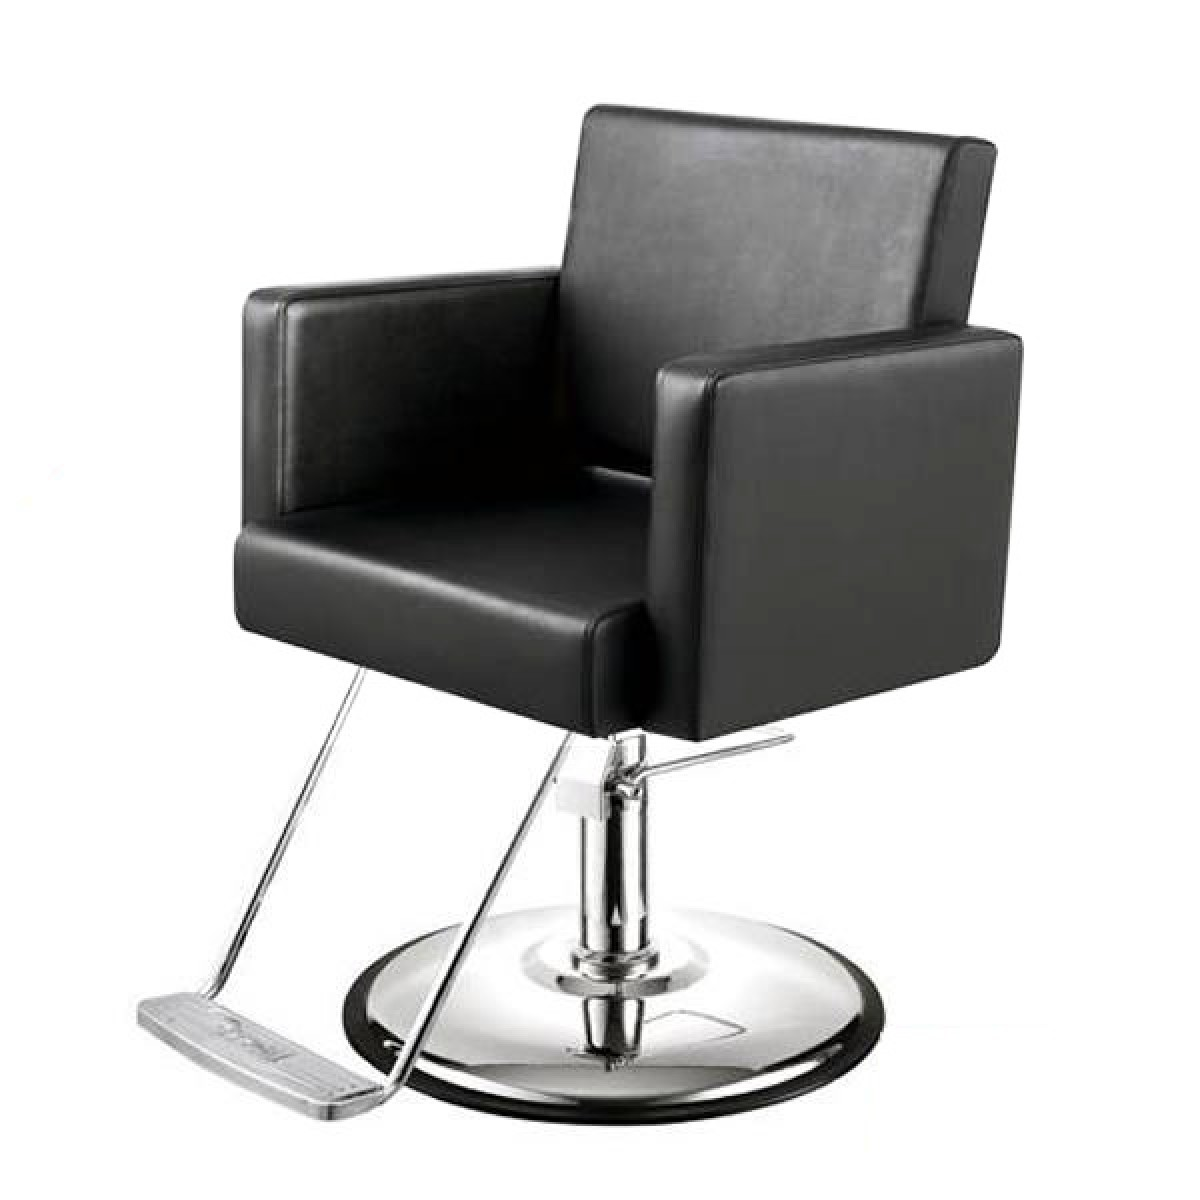 CANON Salon Styling Chair  Salon Chairs Styling Chairs